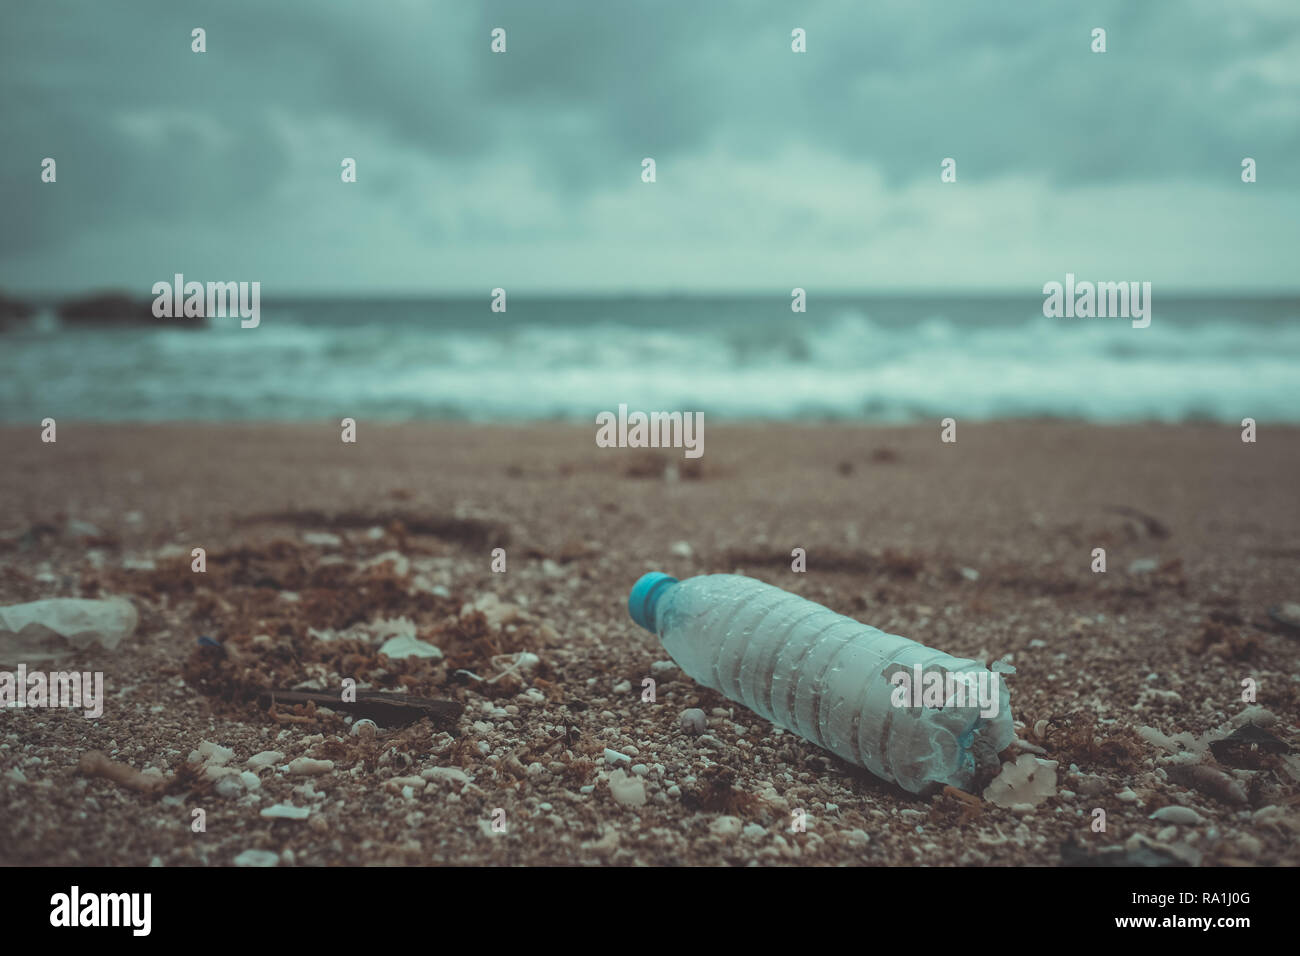 Trash, plastic, garbage, bottle... environmental pollution on the beach. Royalty high-quality free stock photo image of trash, plastic bottle on beach - Stock Image